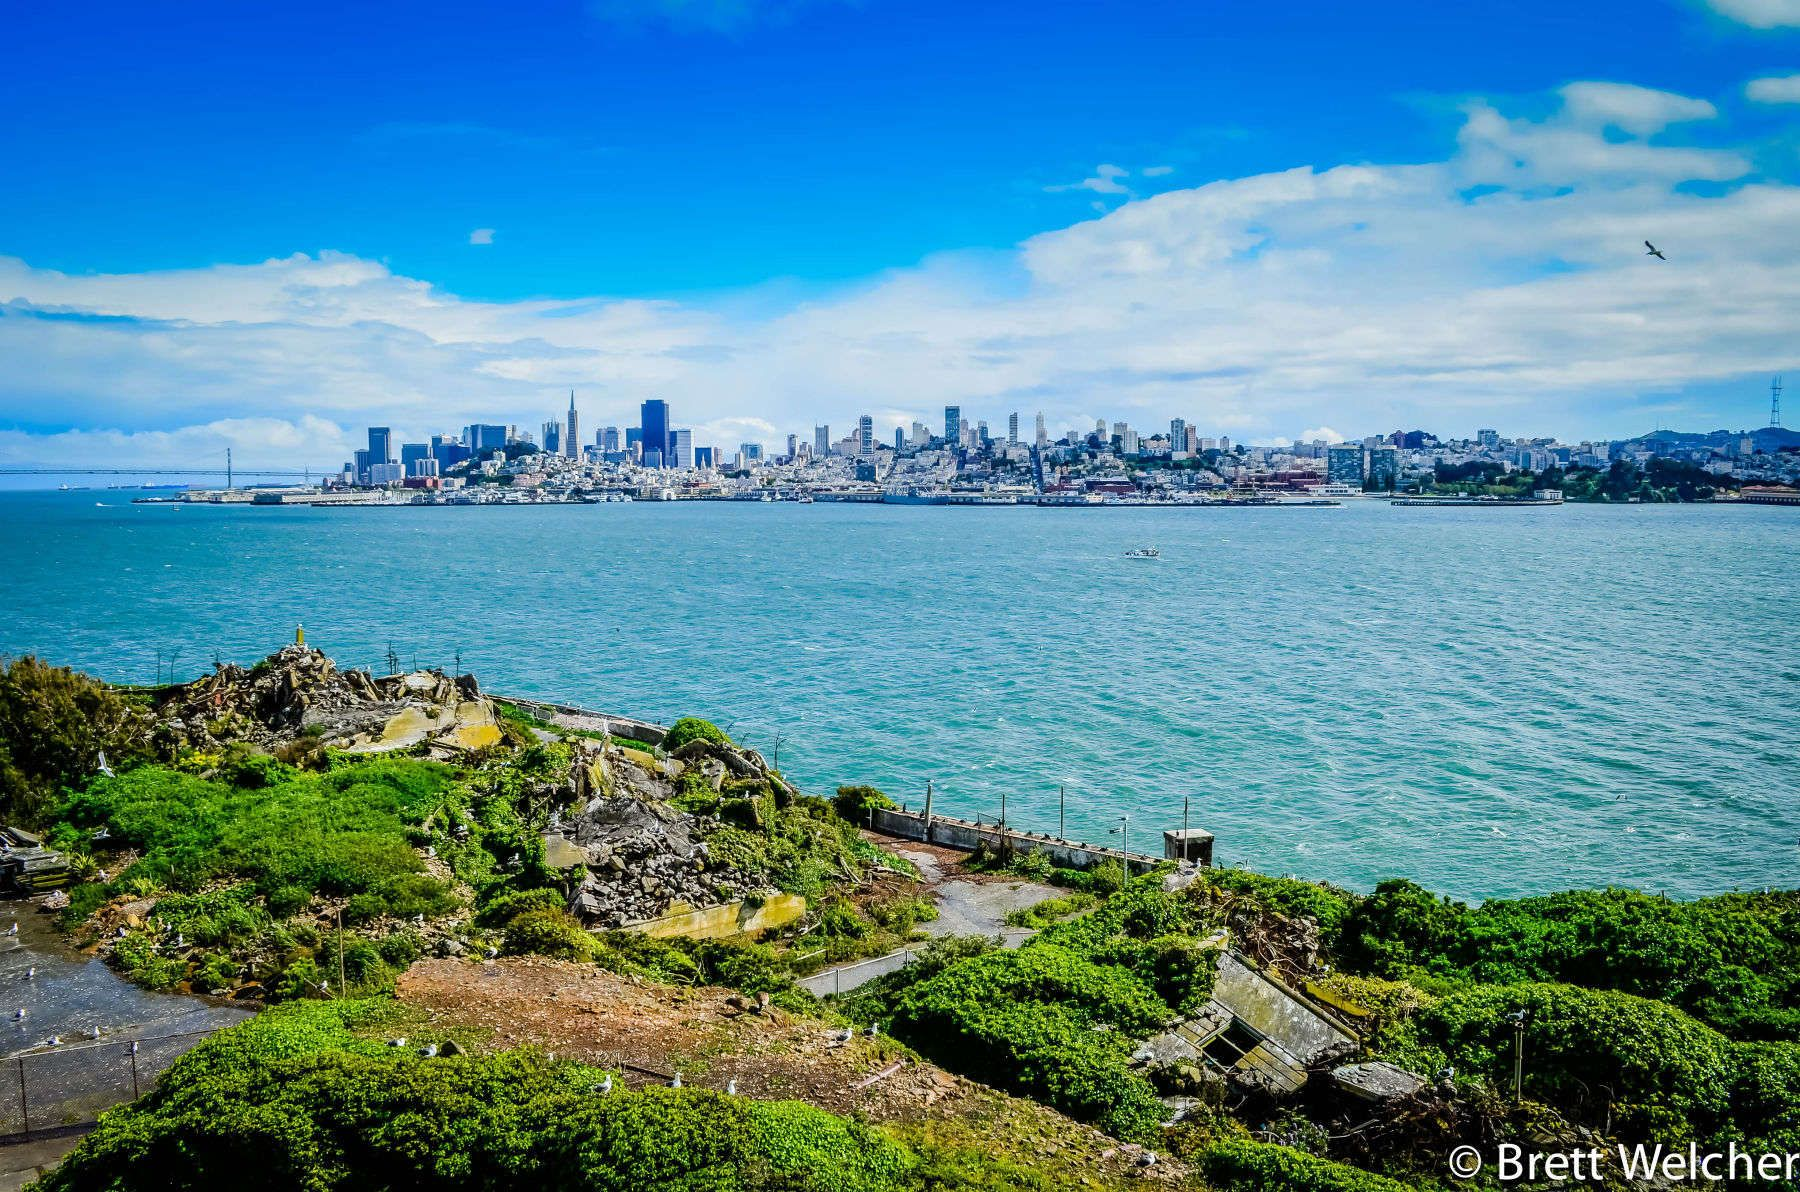 San Francisco, in northern California, is a city on the tip of a peninsula surrounded by the Pacific Ocean and San Francisco Bay. It's known for its hilly landscape, year-round fog, iconic Golden Gate Bridge, cable cars and colorful Victorian houses. The F